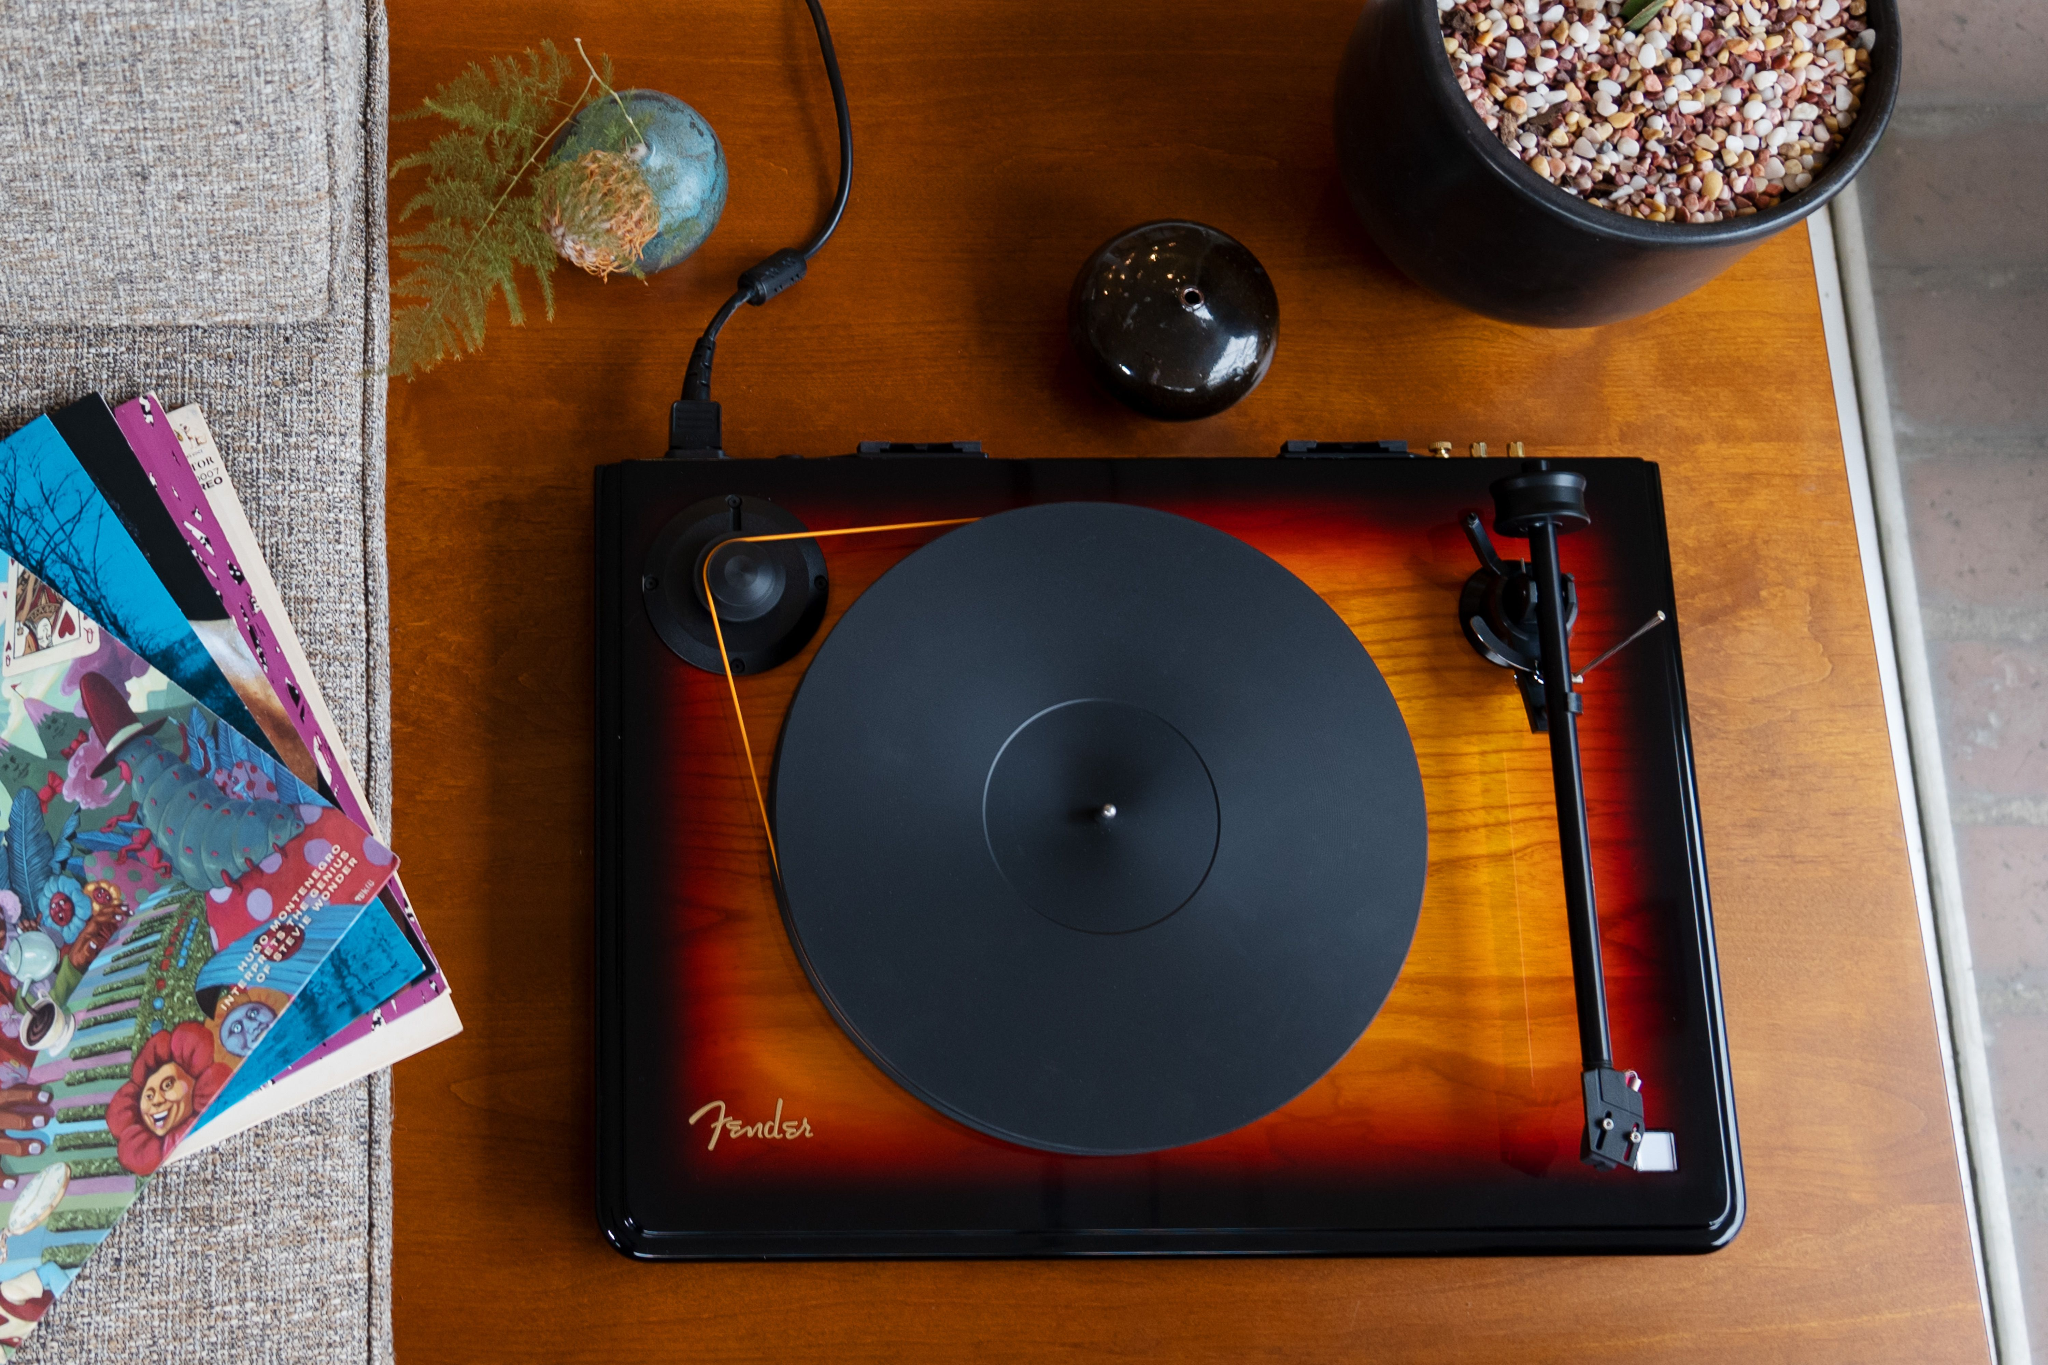 Fender x Mobile Fidelity Electronics Release Fender's First High-Performance Turntable